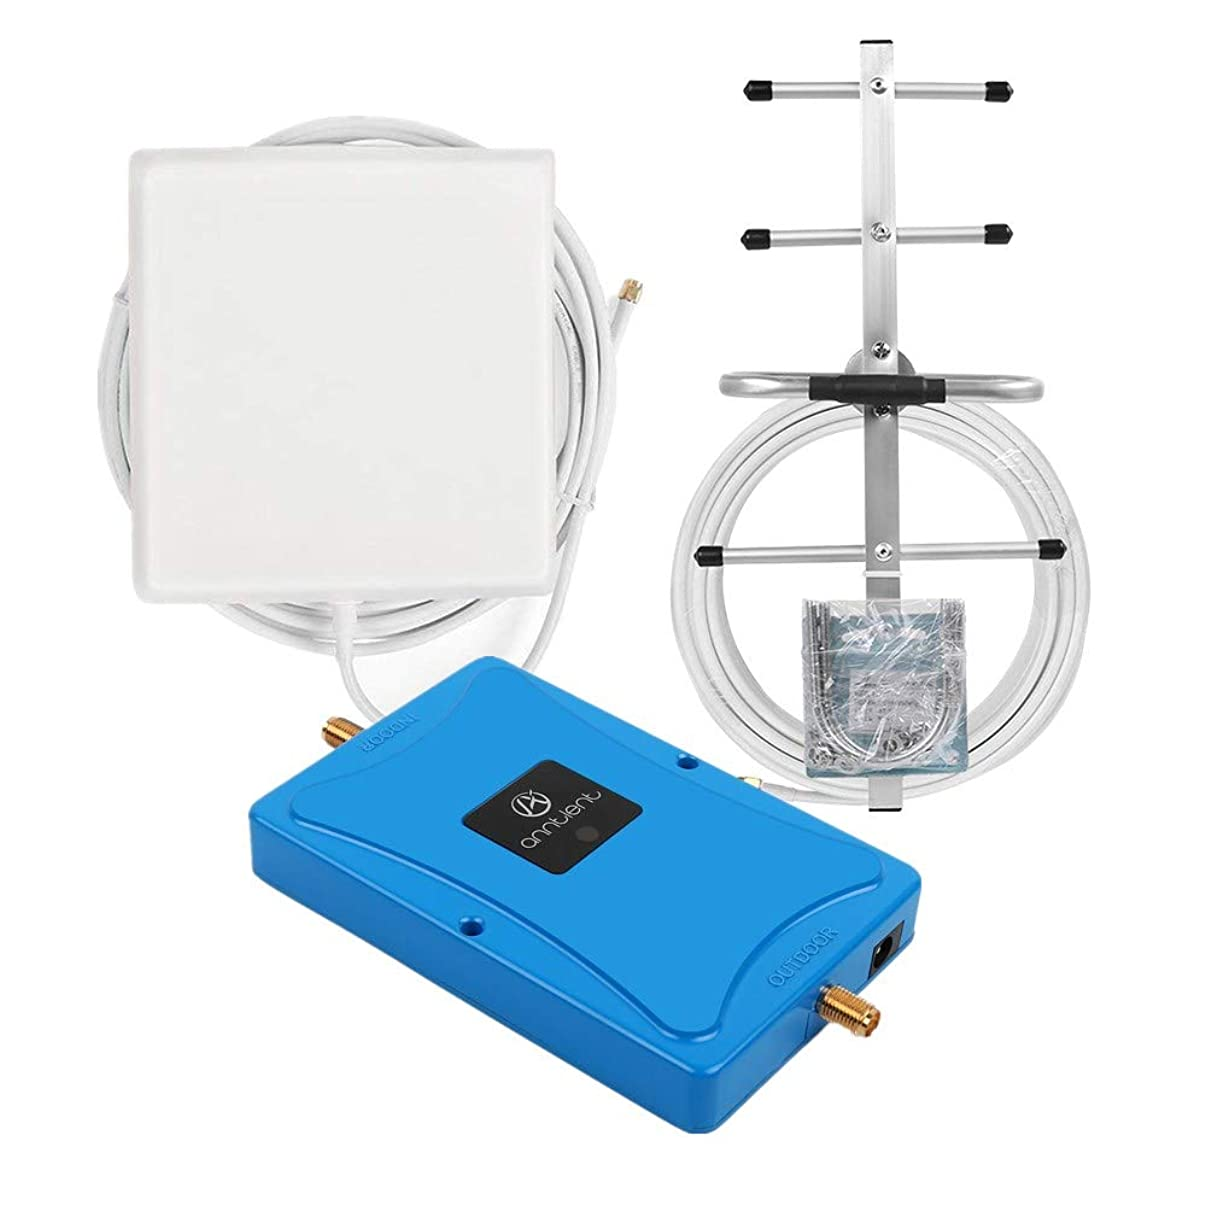 Verizon 4G LTE Cell Phone Signal Booster for Home and Office - Enhance Cellular Data Signal by 65dB 700MHz Band 13 Repeater and Panel/Yagi Antennas Extend Coverage Up to 4,000Sq Ft